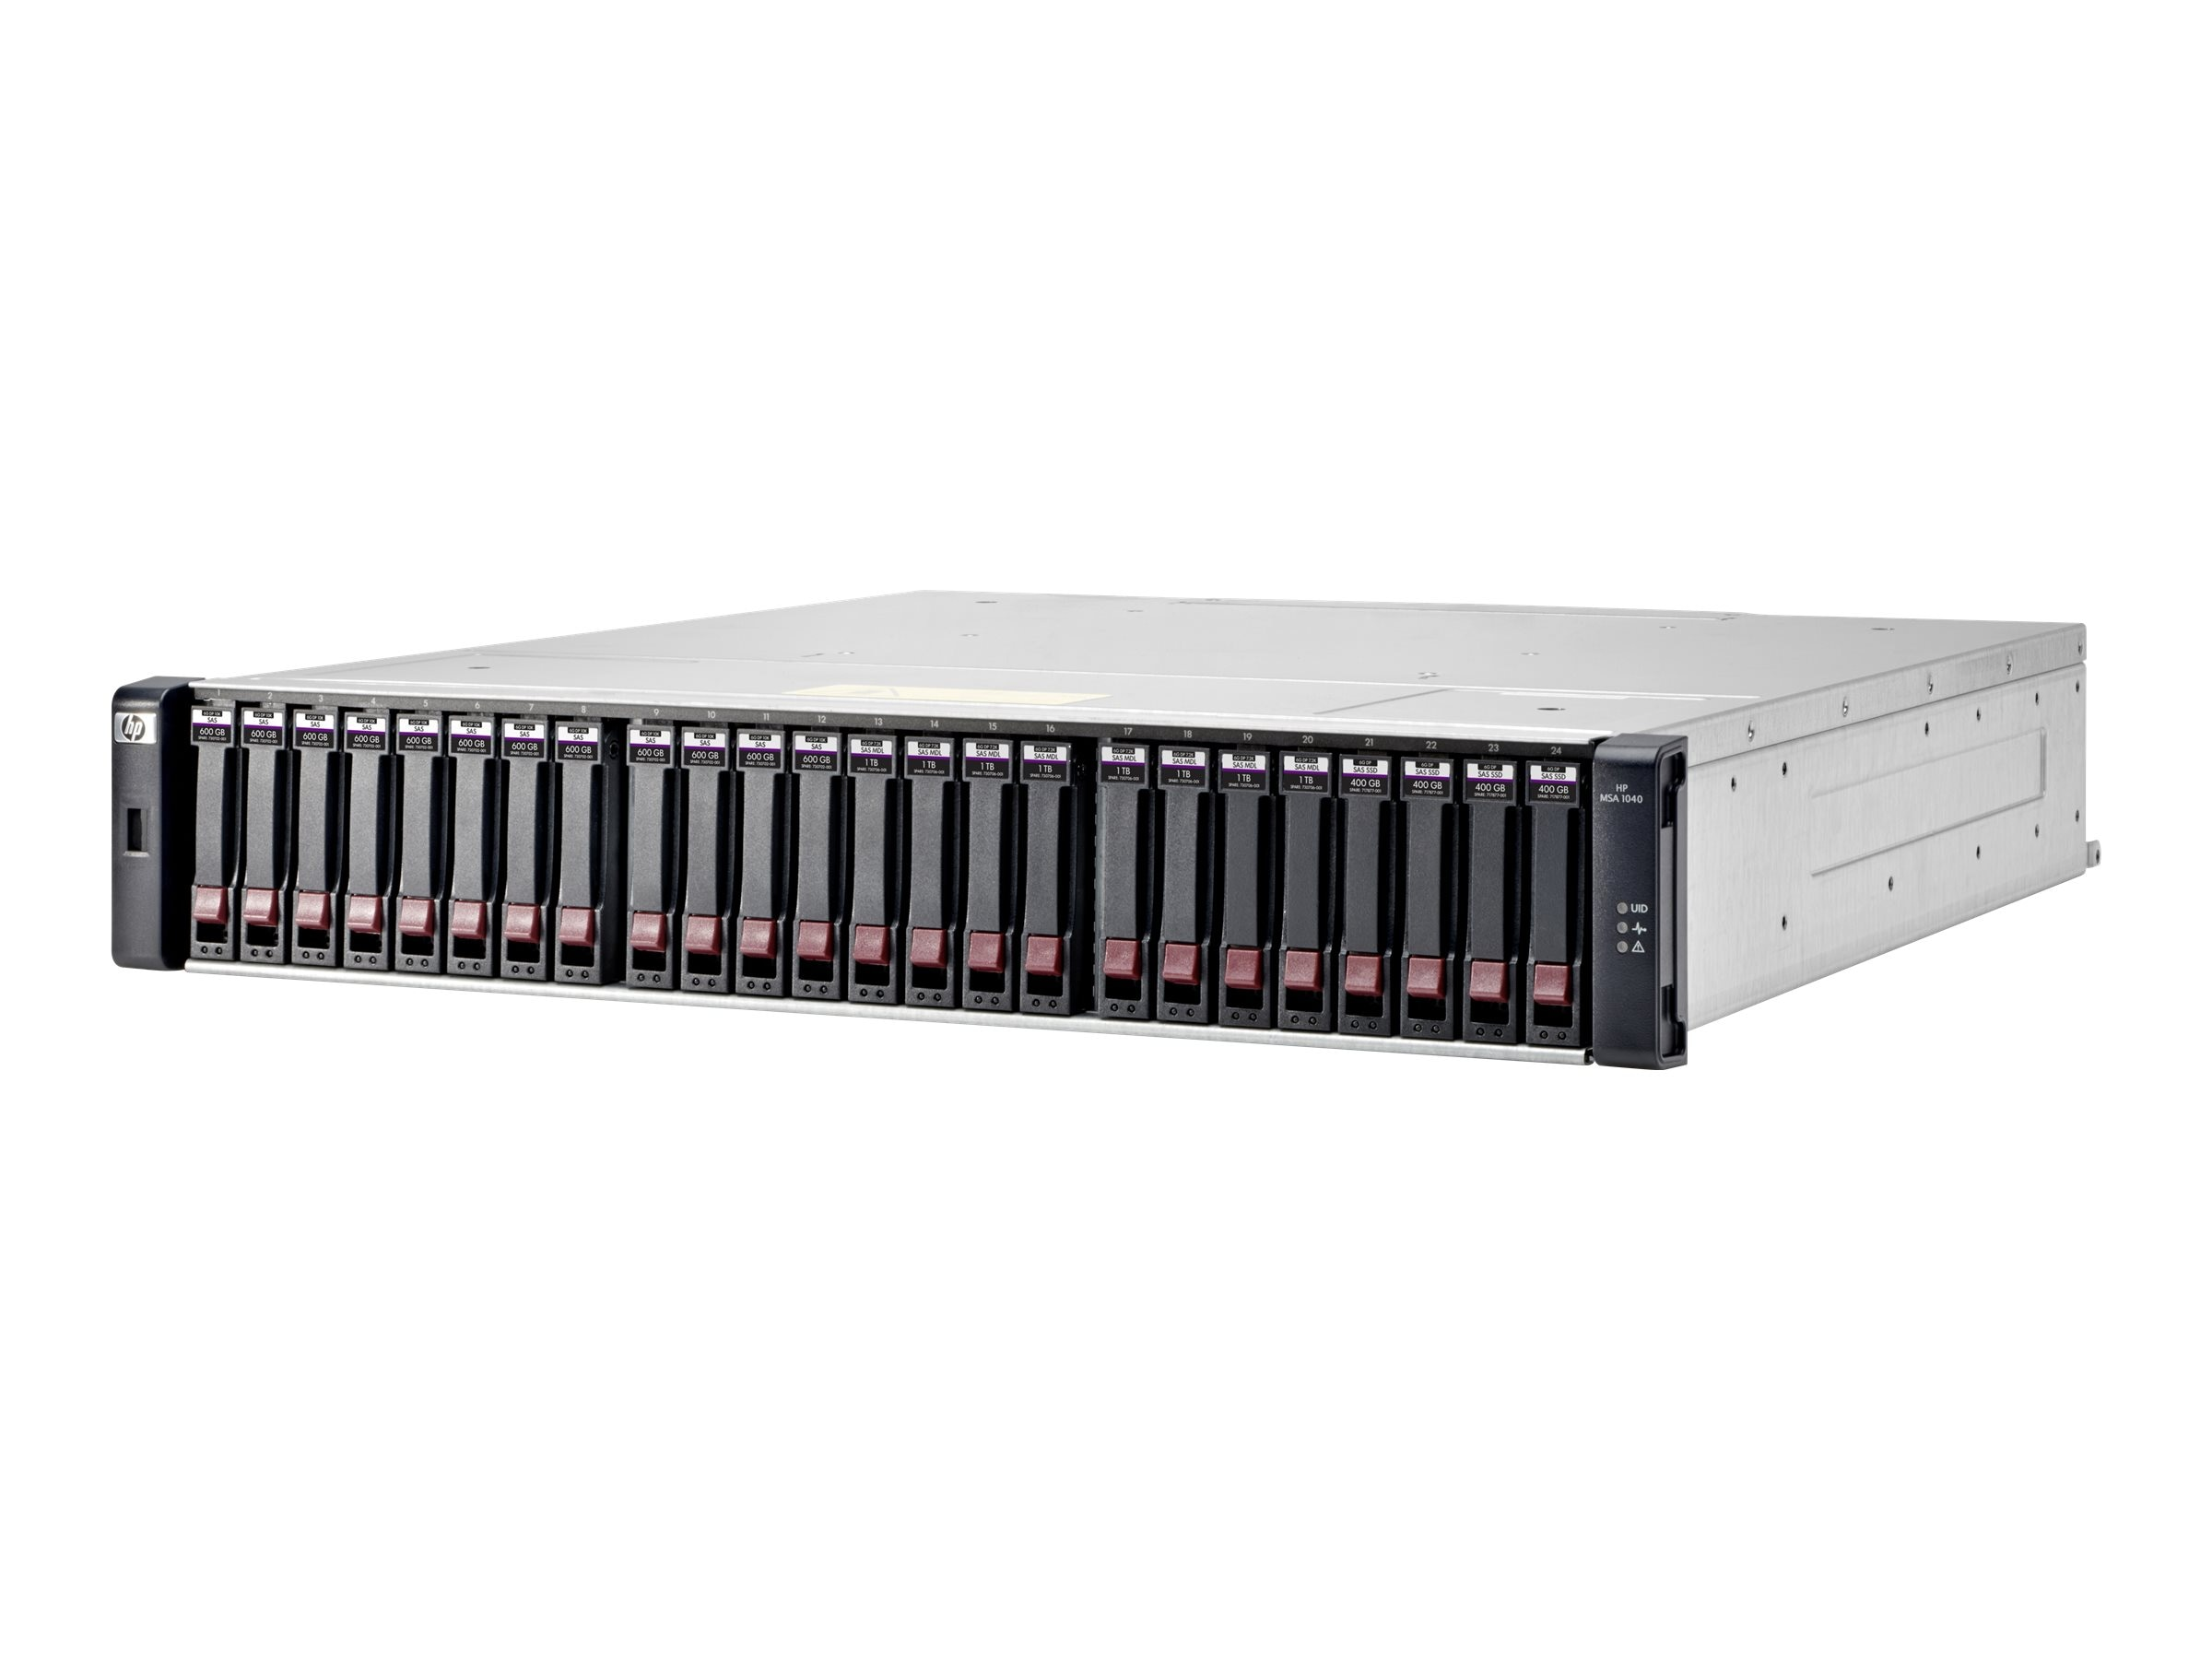 HPE MSA 1040 1Gb iSCSI Storage Array Bundle w  (12) 900GB SAS 10K RPM SFF Hard Drives (Smart Buy), K2Q06SB, 17784622, SAN Servers & Arrays